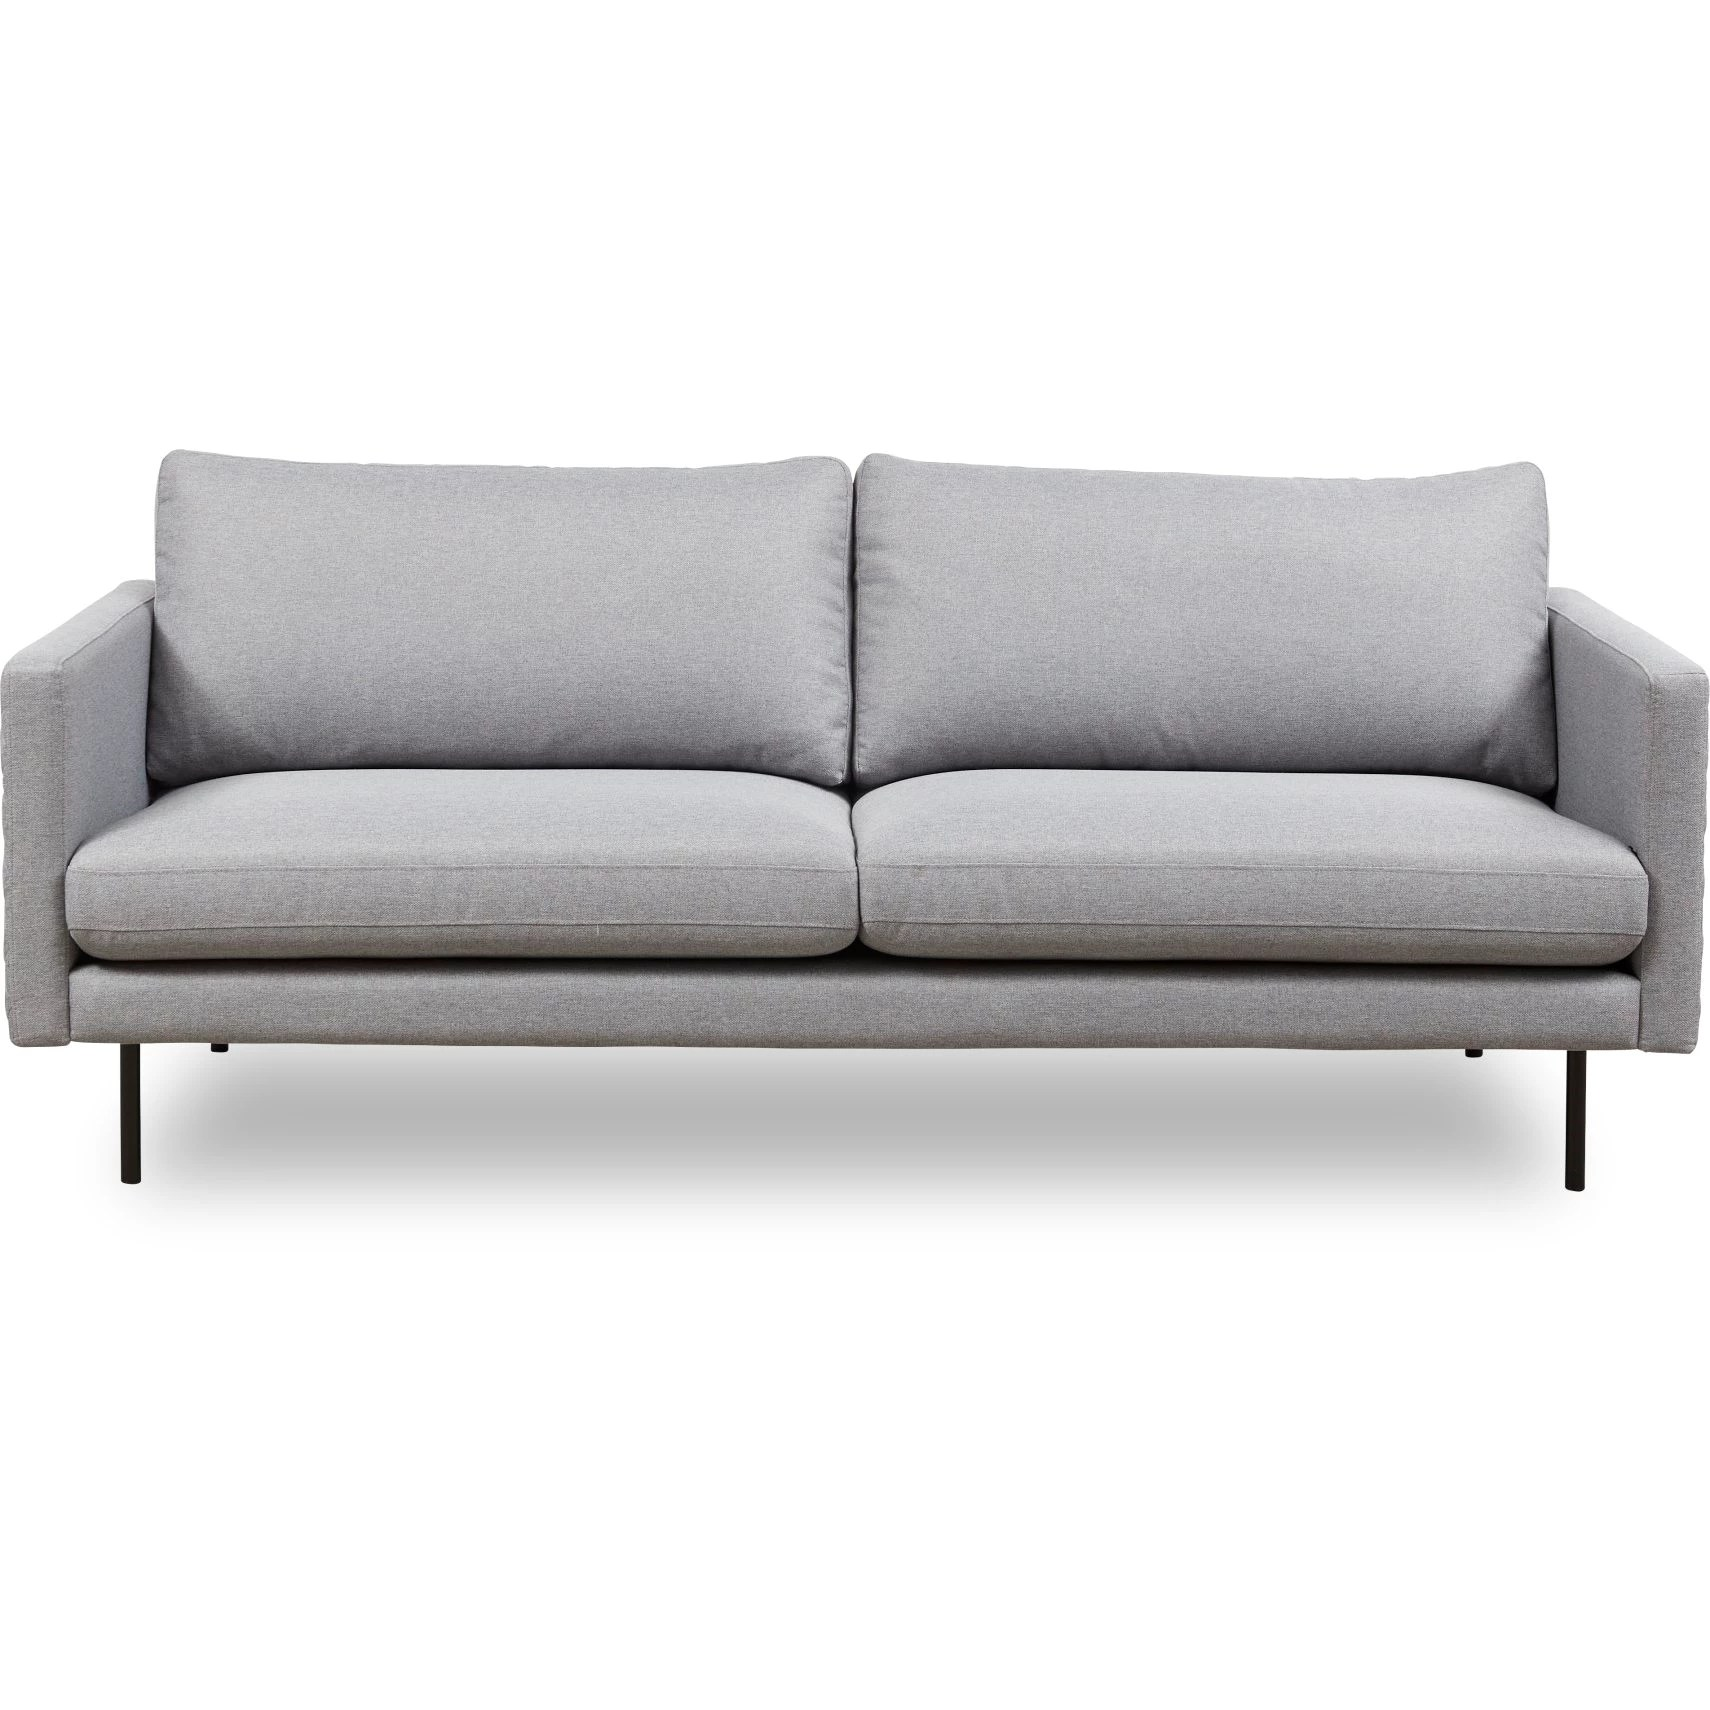 1 personers sofa med chaiselong leather love seat 2 og 3 se udvalget online her